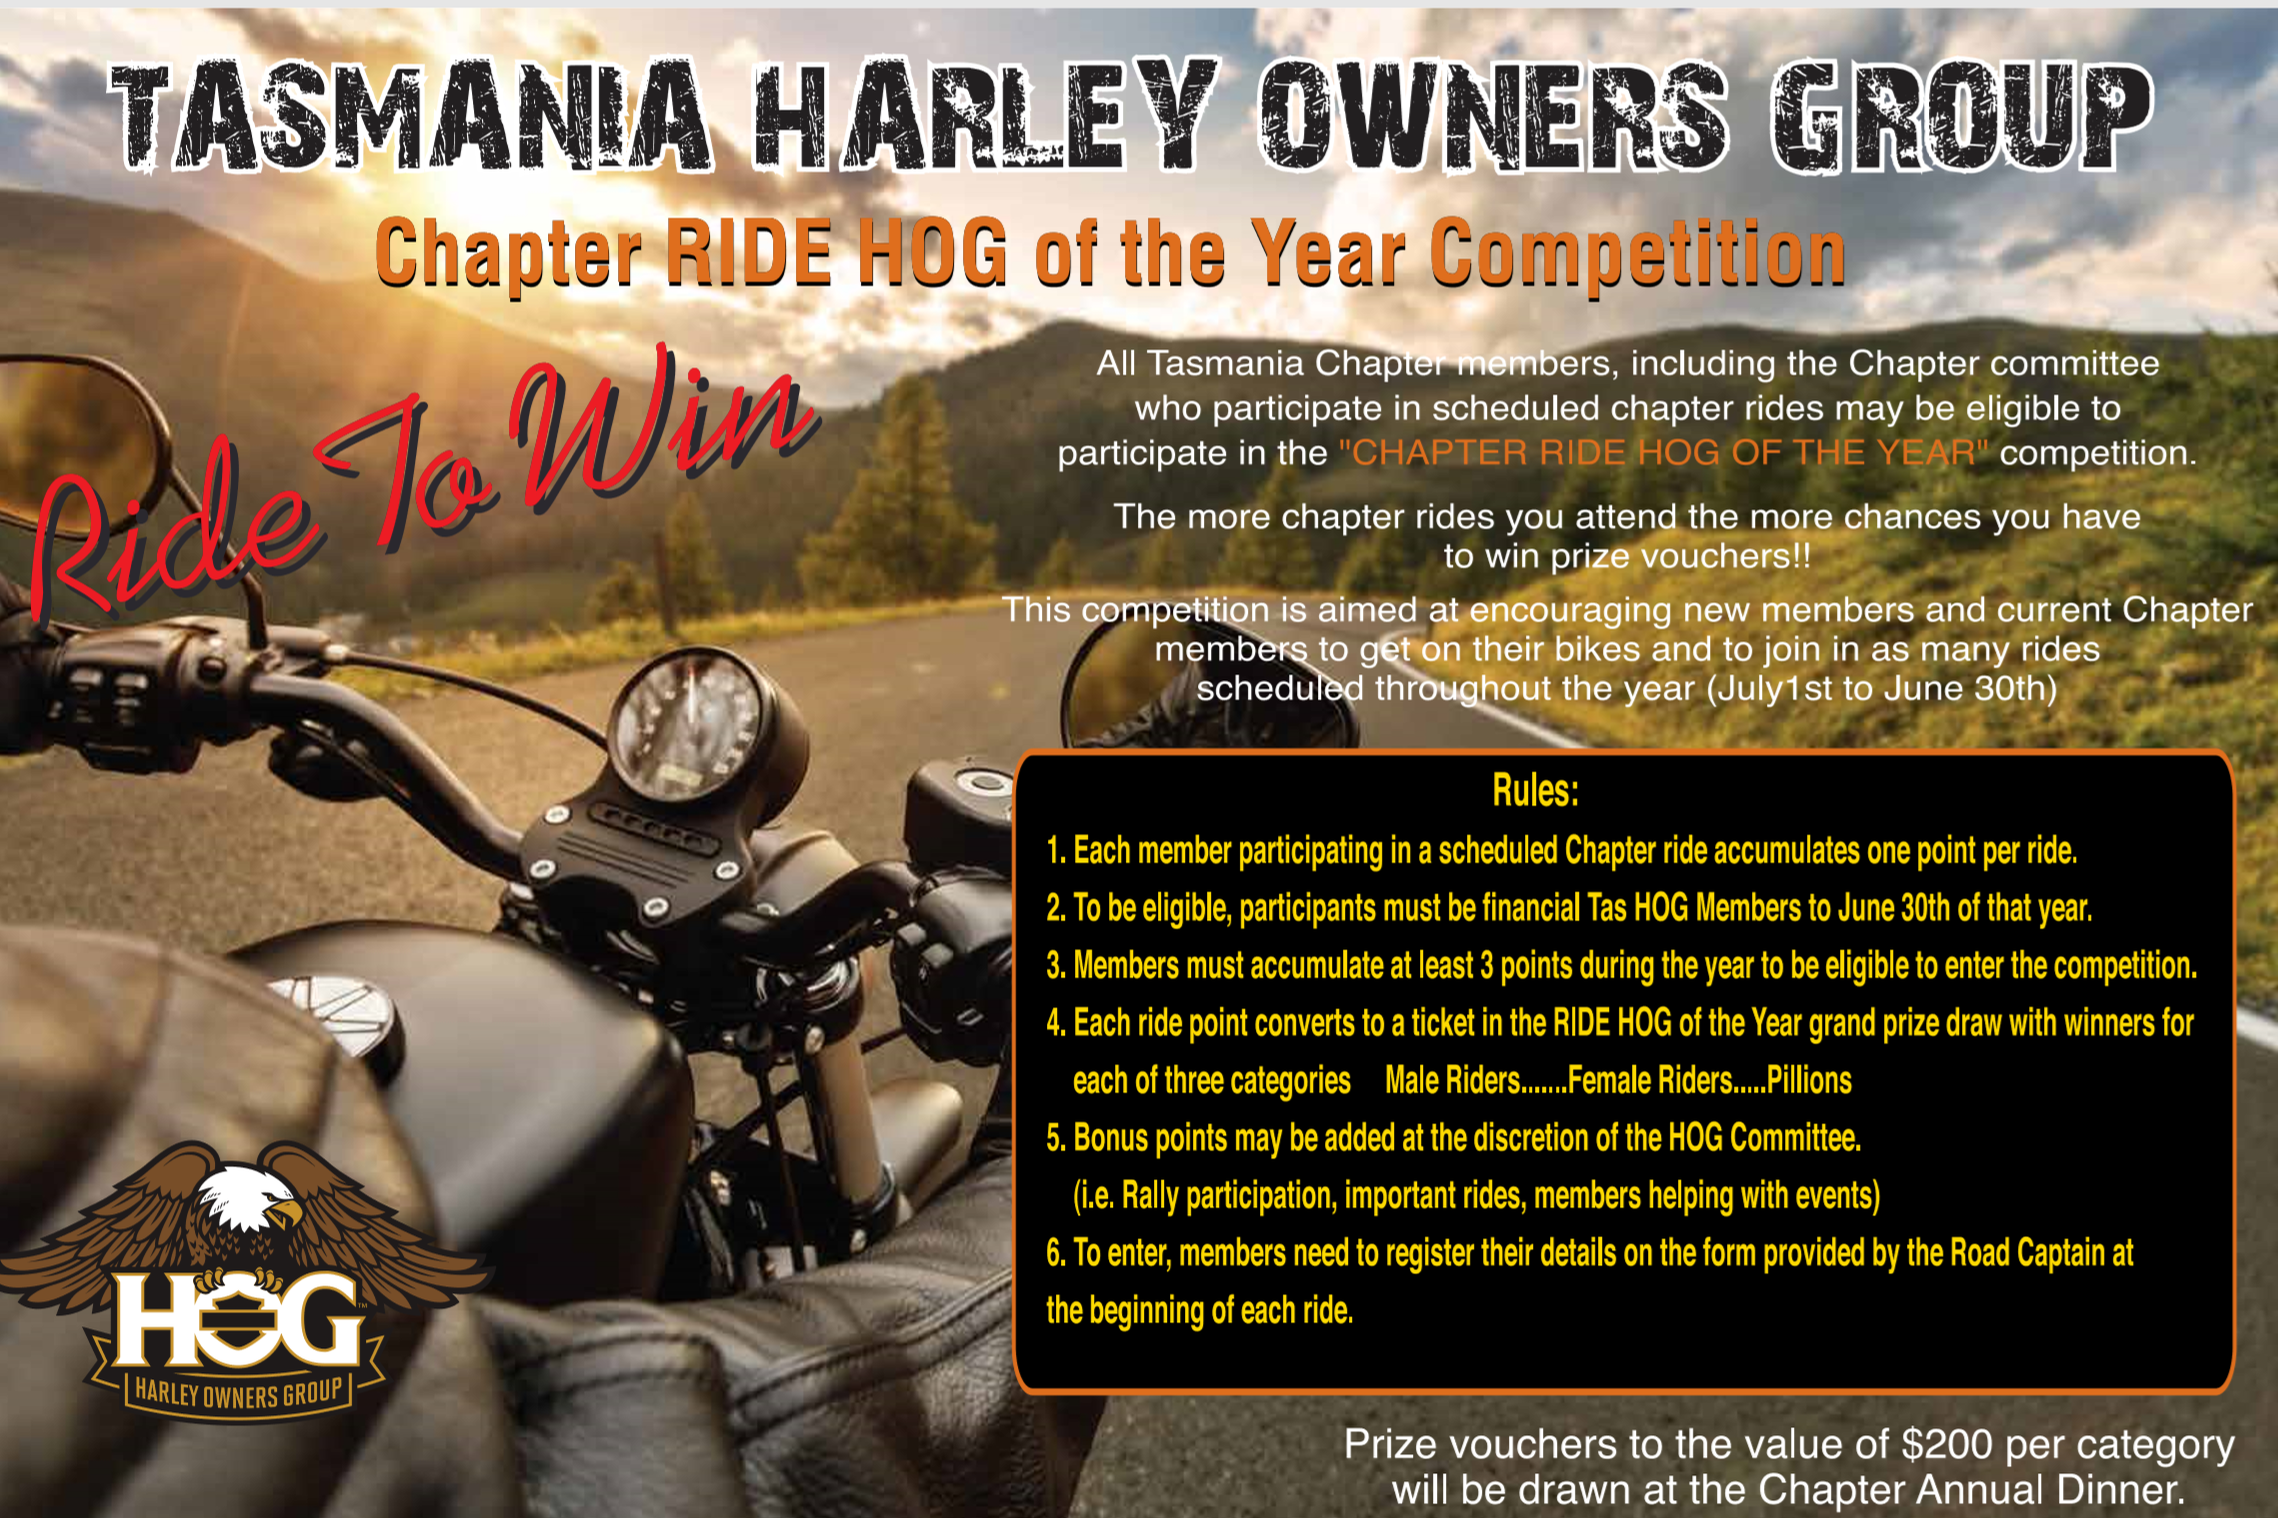 And so the new Ride to Win Competition has begun. Get on your bikes and earn your points for 2019/20. Winners for last year's comp were announced at the Annual Dinner in July. Congratulations to our winners who each received a special Ride Hog of the Year Mug and RHD Coin Vouchers to the value of $200. Male Ride Hog - Andrew Pearce Female Ride Hog - Julie Fleming Pillion Ride Hog - Annette Campbell